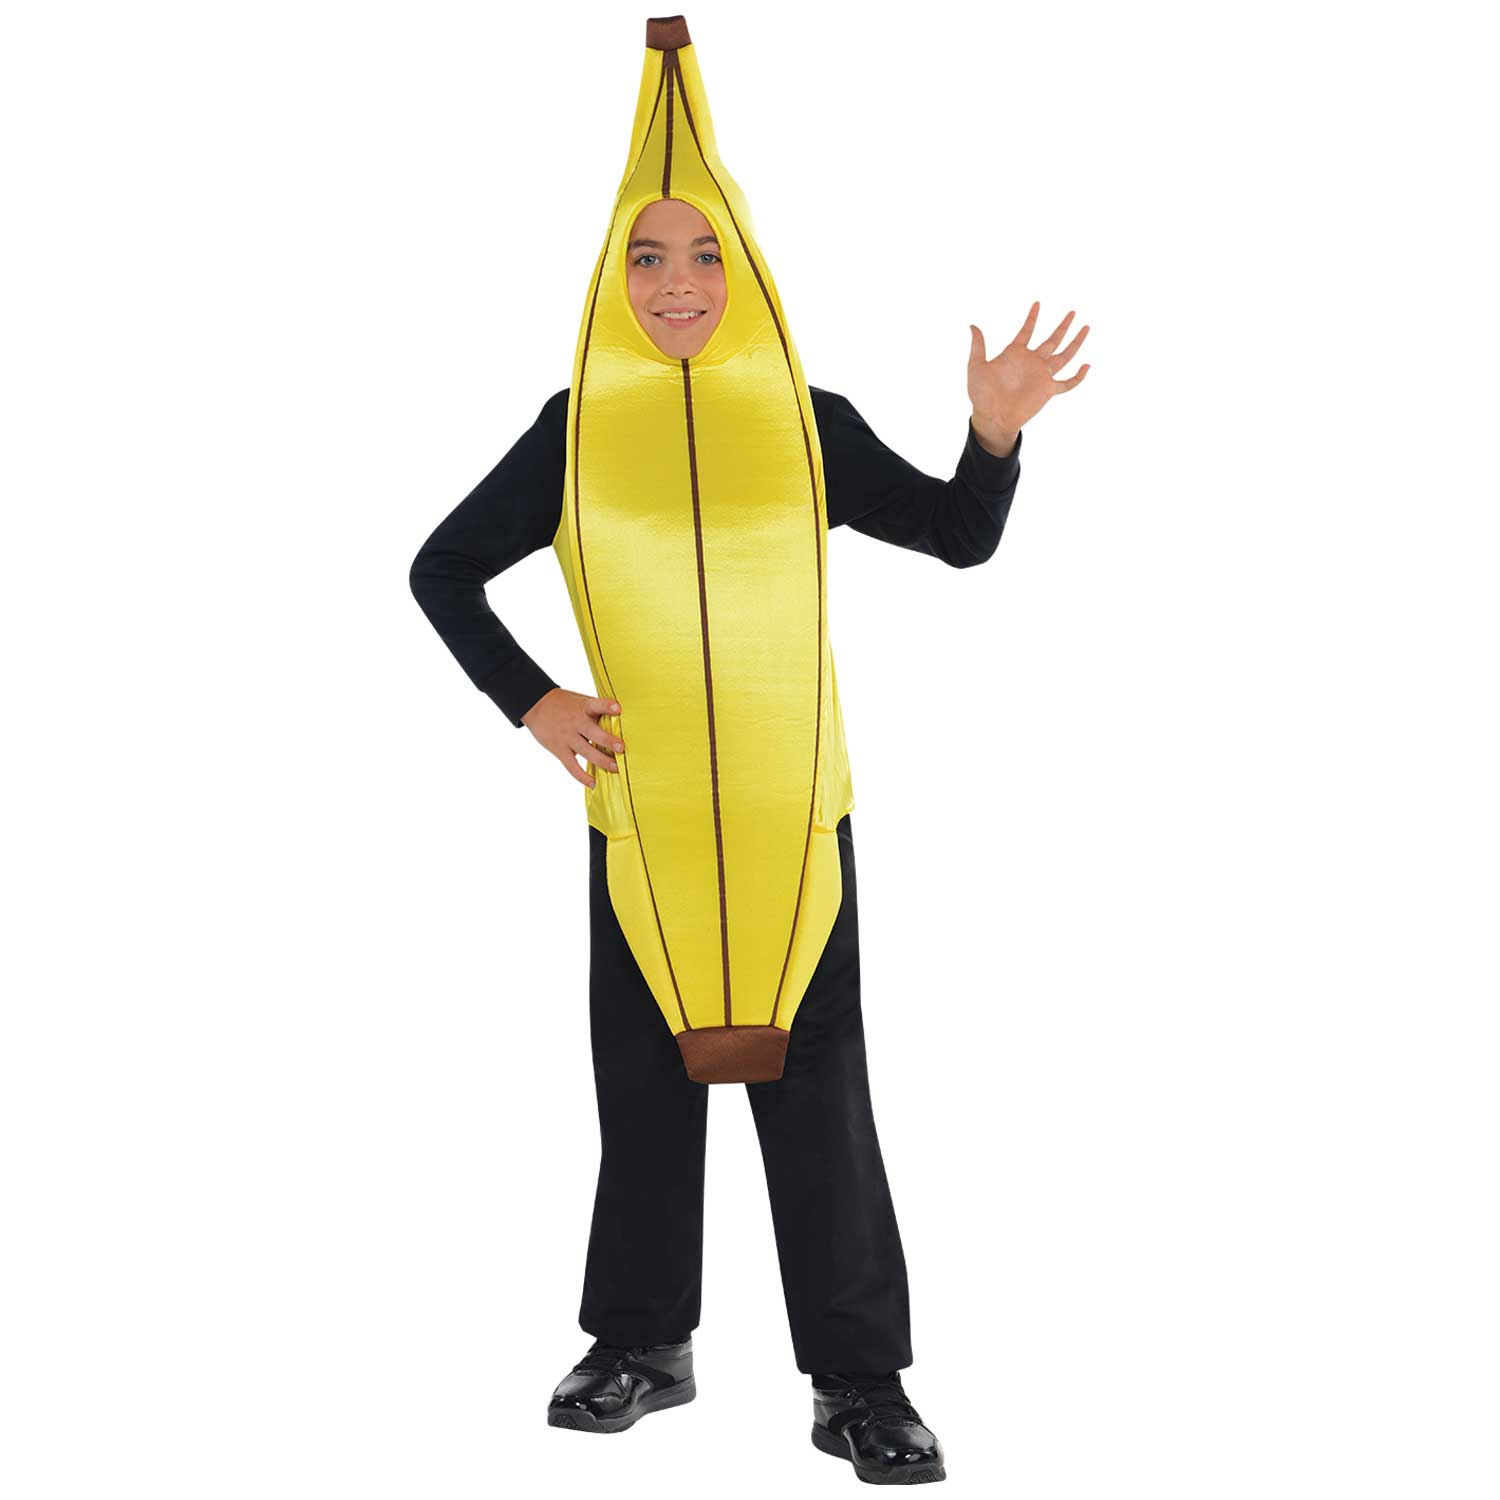 Child Banana costume 844270-55 Amscan